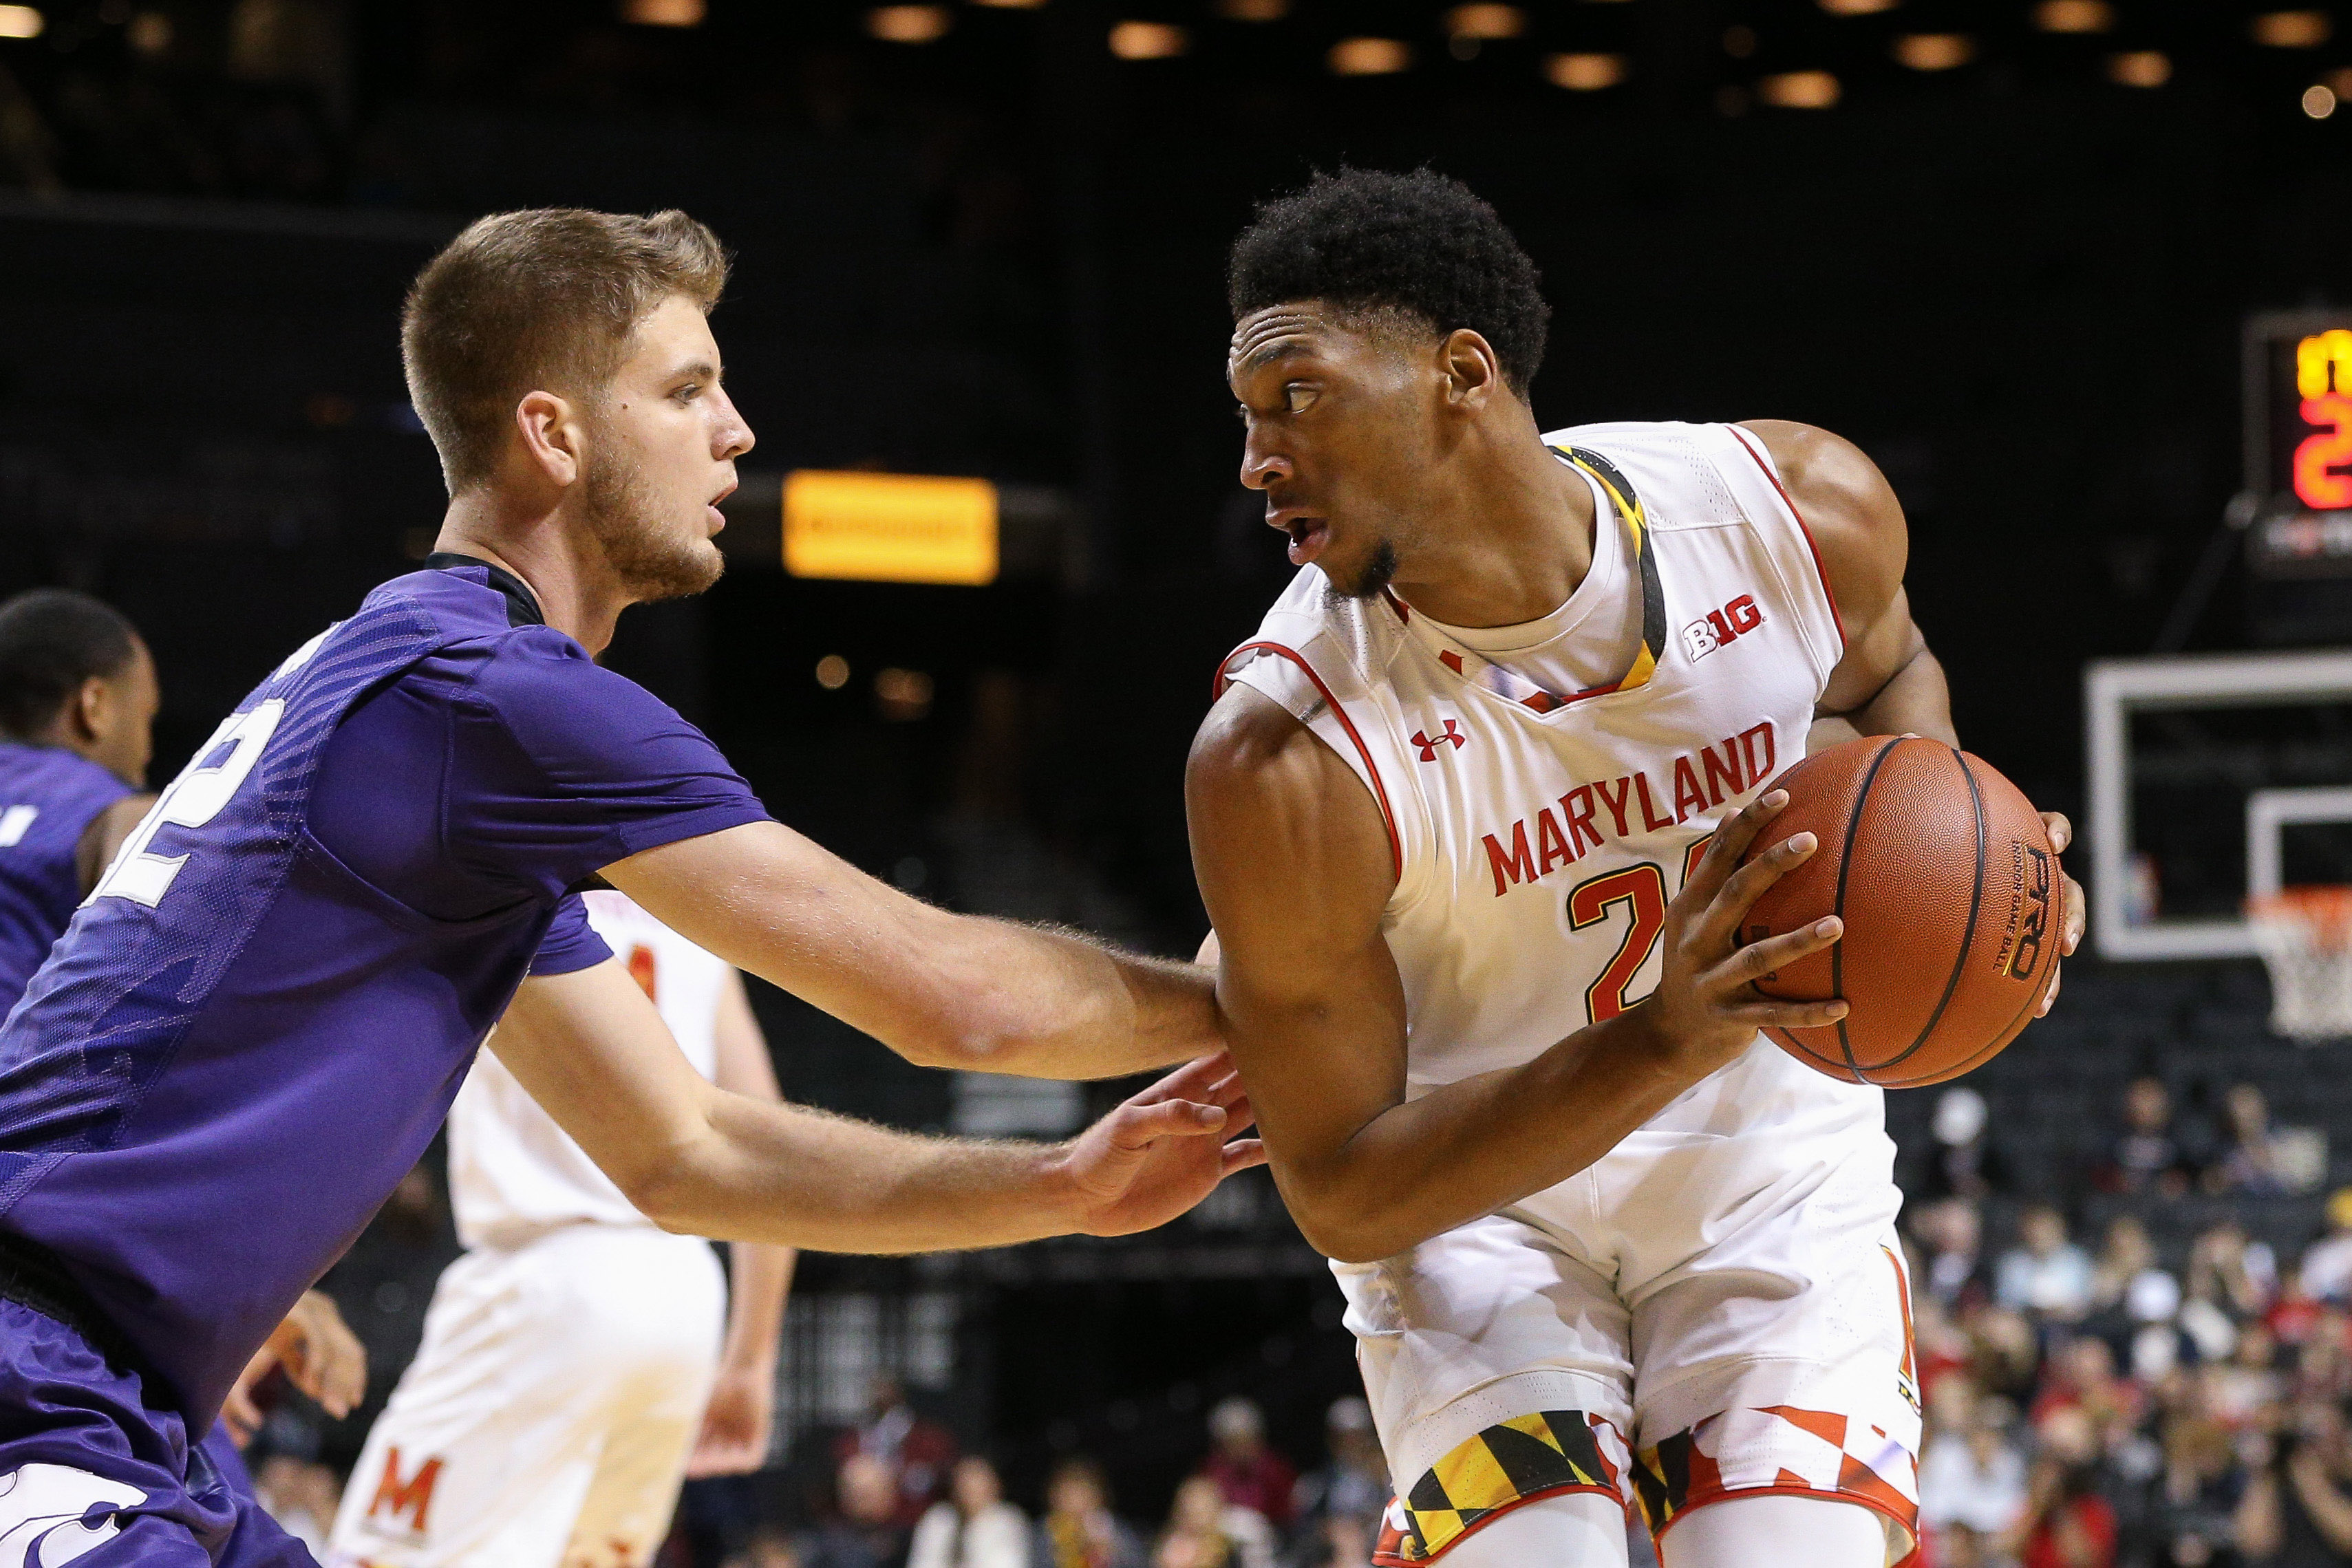 9707882-ncaa-basketball-barclays-center-classic-maryland-vs-kansas-state